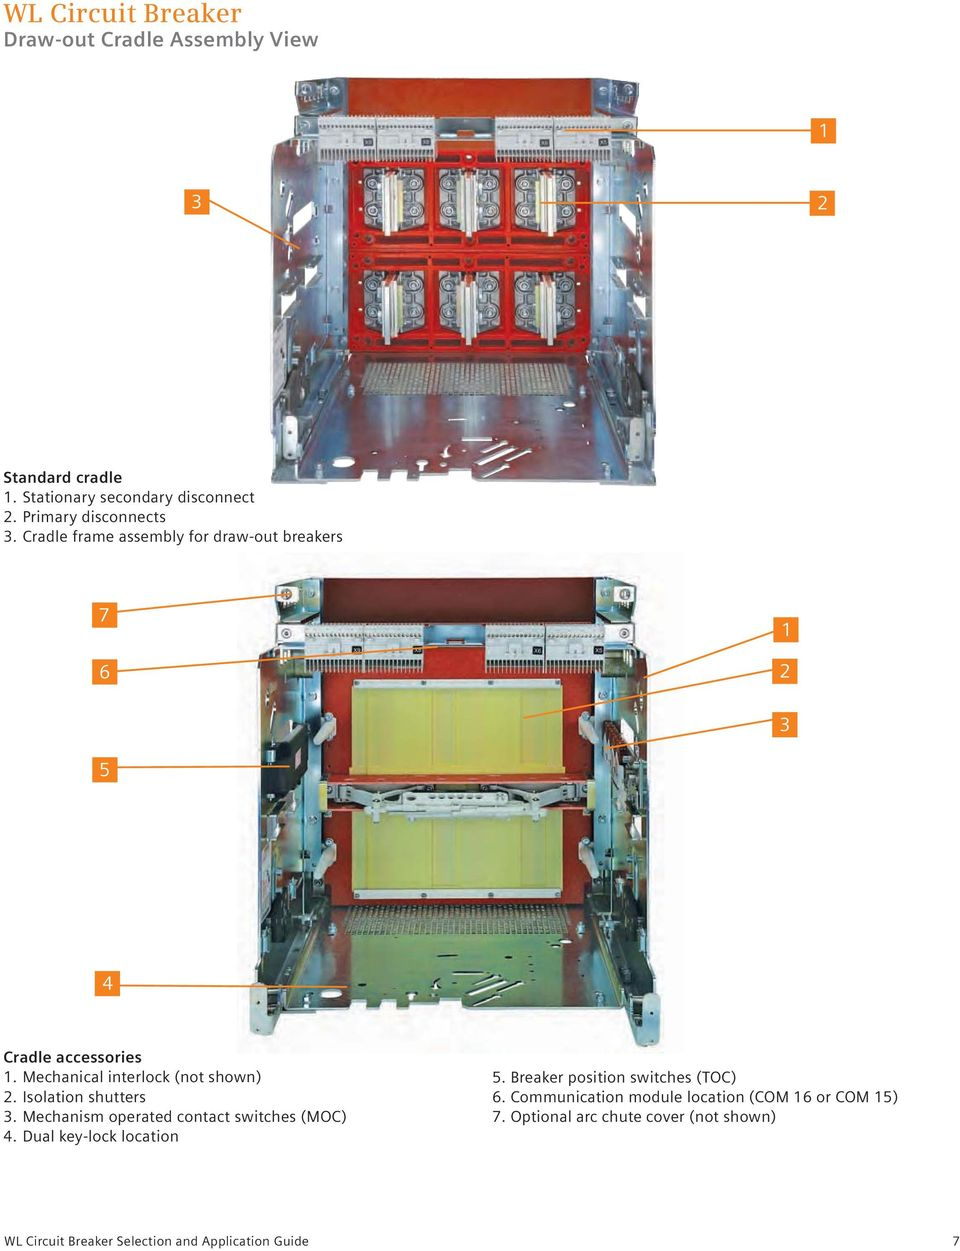 Selection And Application Guide Low Voltage Wl Circuit Breakers Arcfault Interrupter Goo Wikipedia Mechanical Interlock Not Shown 2 Isolation Shutters 3 Mechanism Operated Contact Switches 10 Breaker